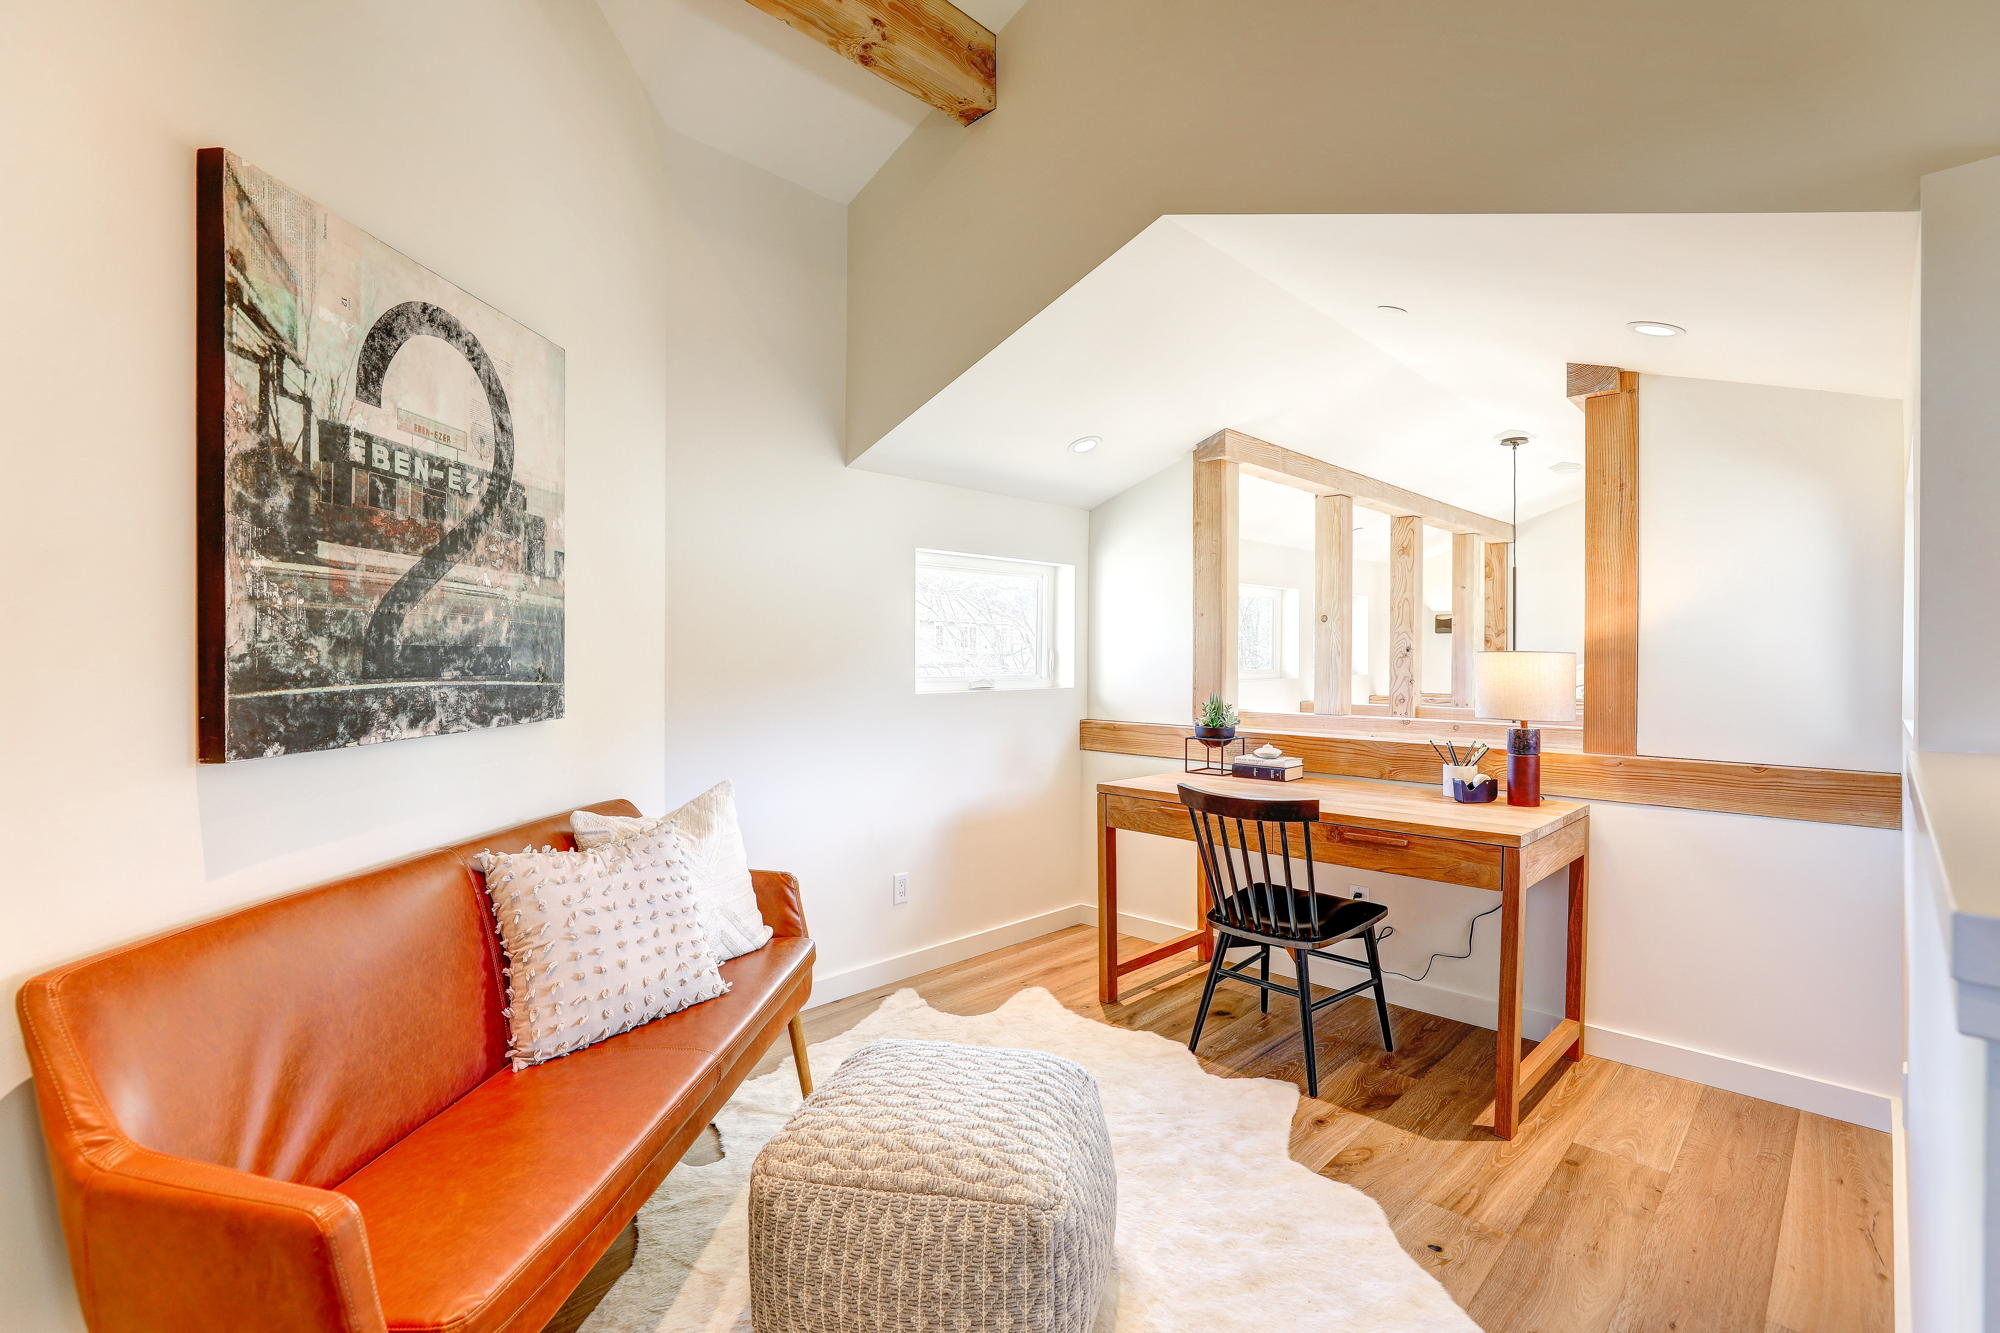 38 Ryan Avenue, Mill Valley - Sycamore Park Homes for sale - 41- Listed by Team Own Marin with Compass Real Estate.jpg